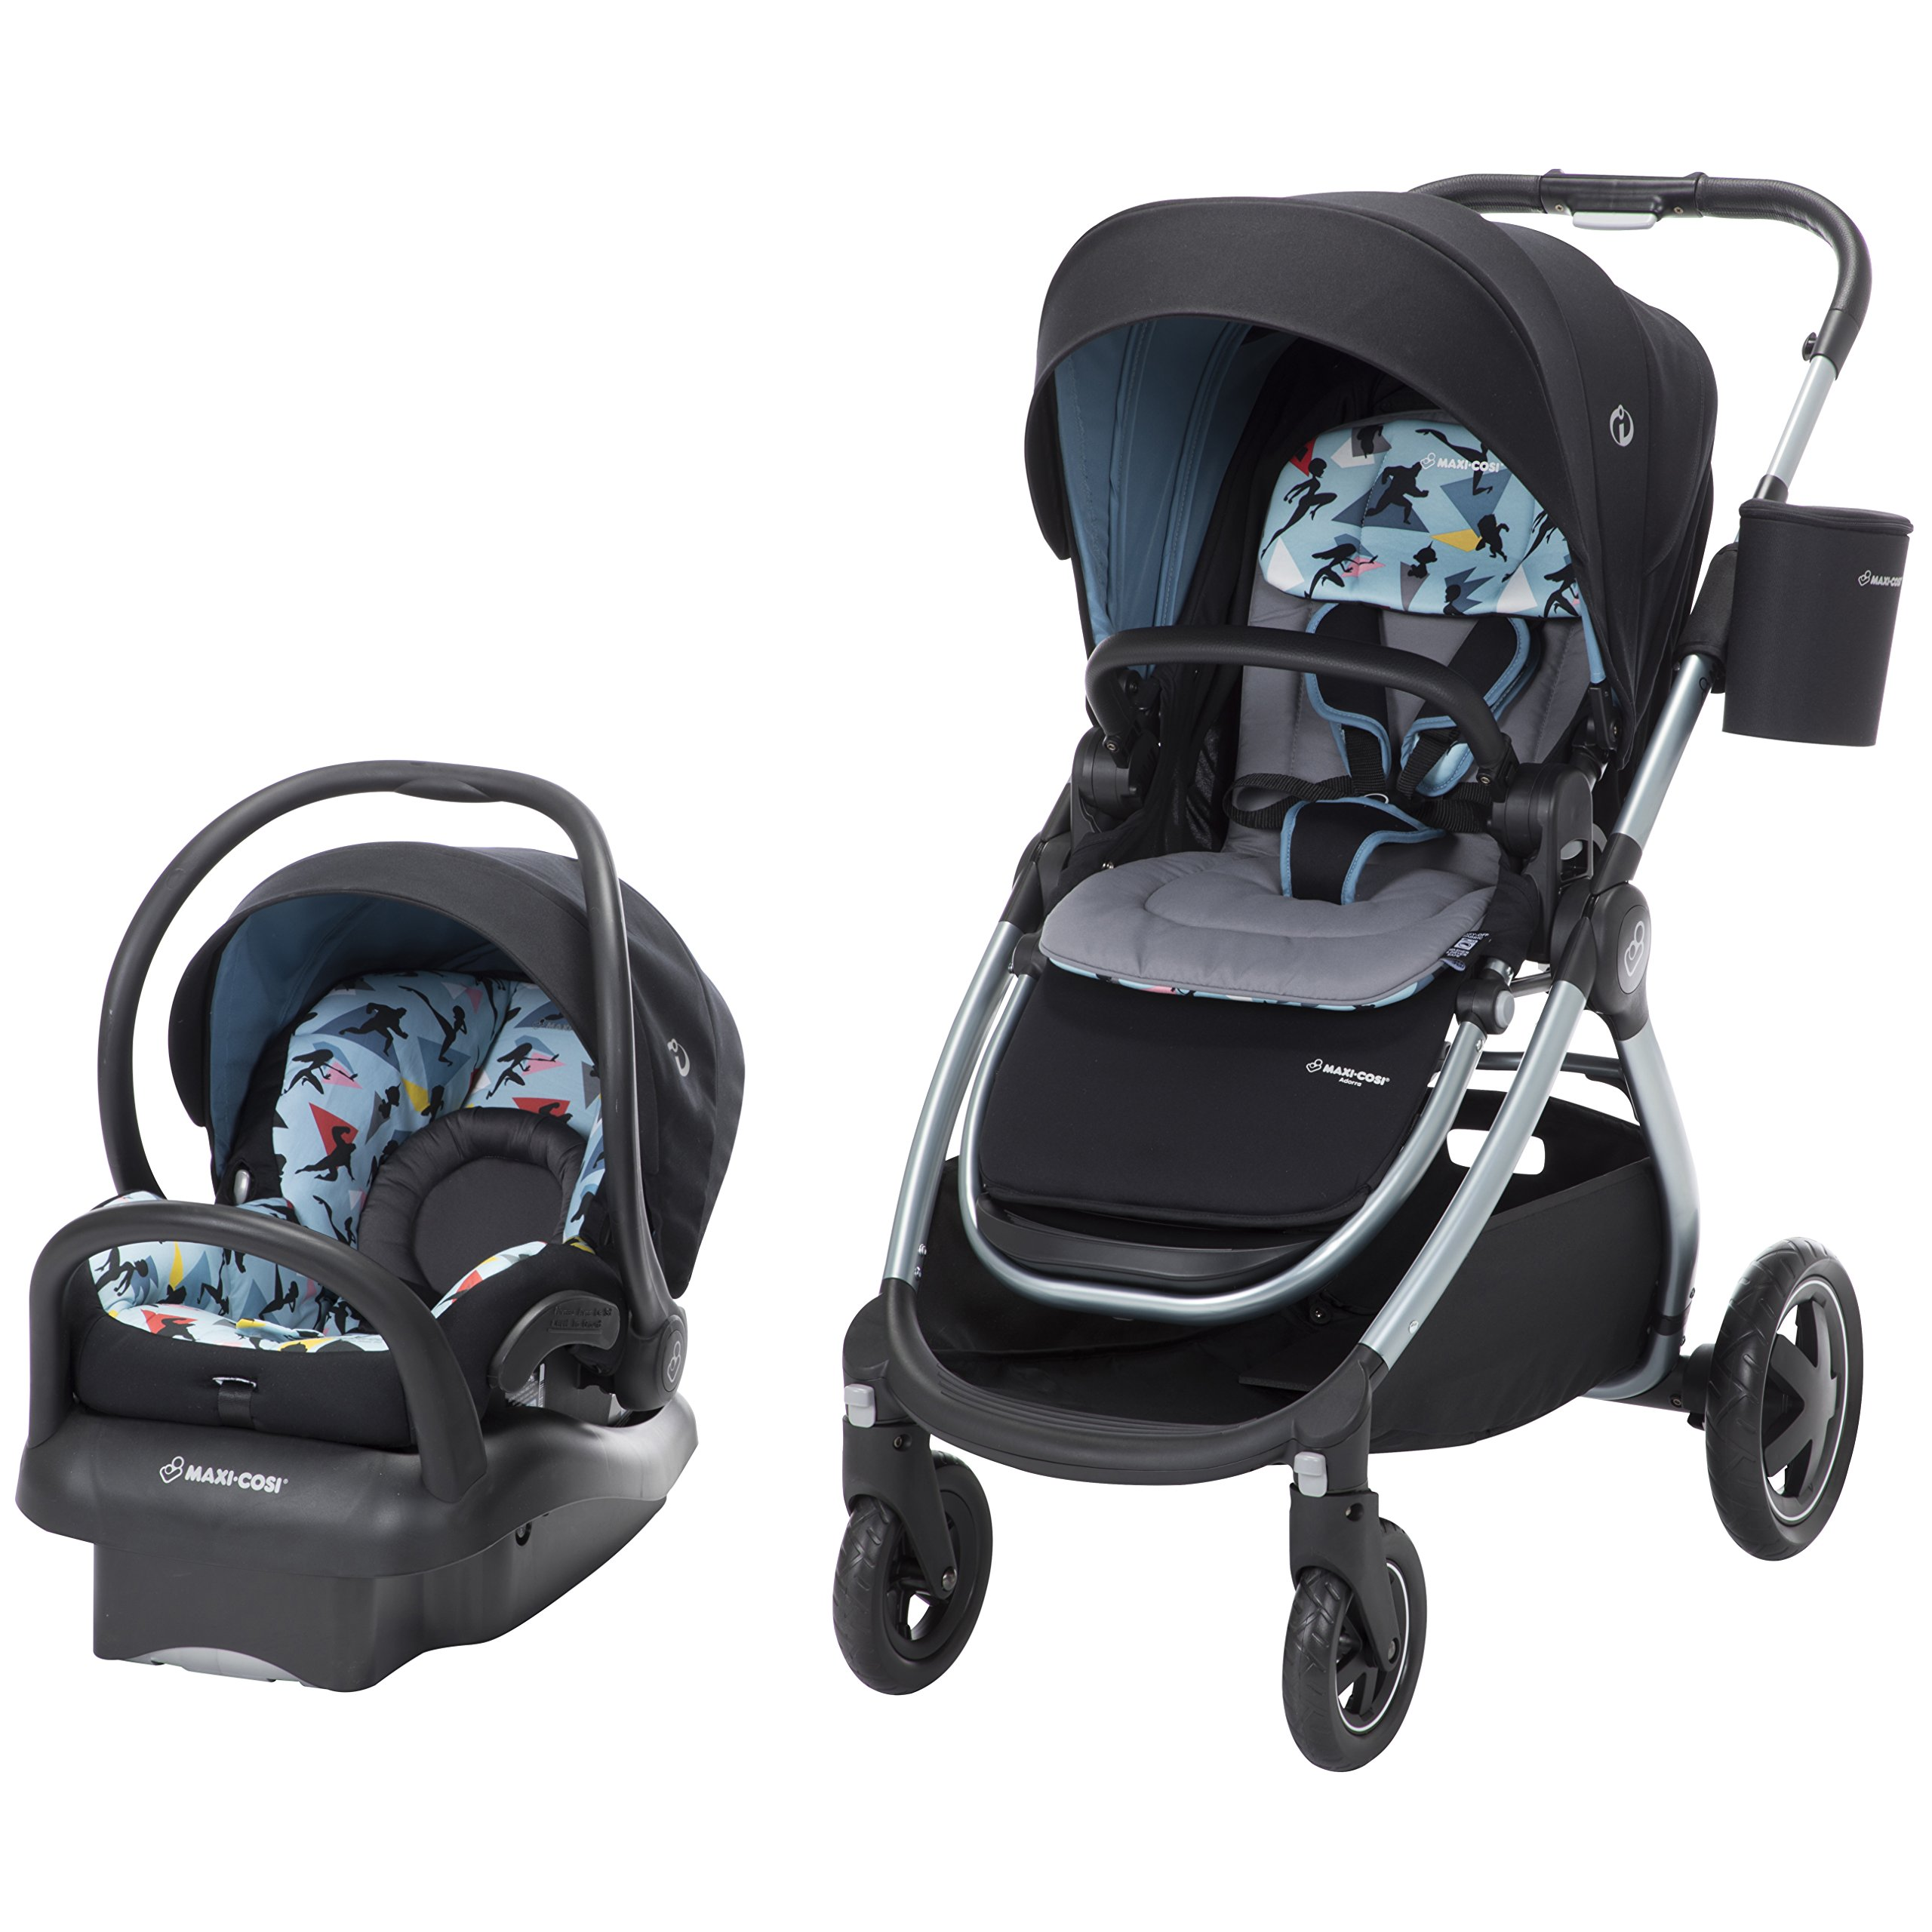 Disney Baby Adorra 5-in-1 Modular Travel System with Mico Max 30 Infant Car Seat, Disney-Pixar Incredibles 2, Blue/Black/Grey from Maxi-COSI by Disney